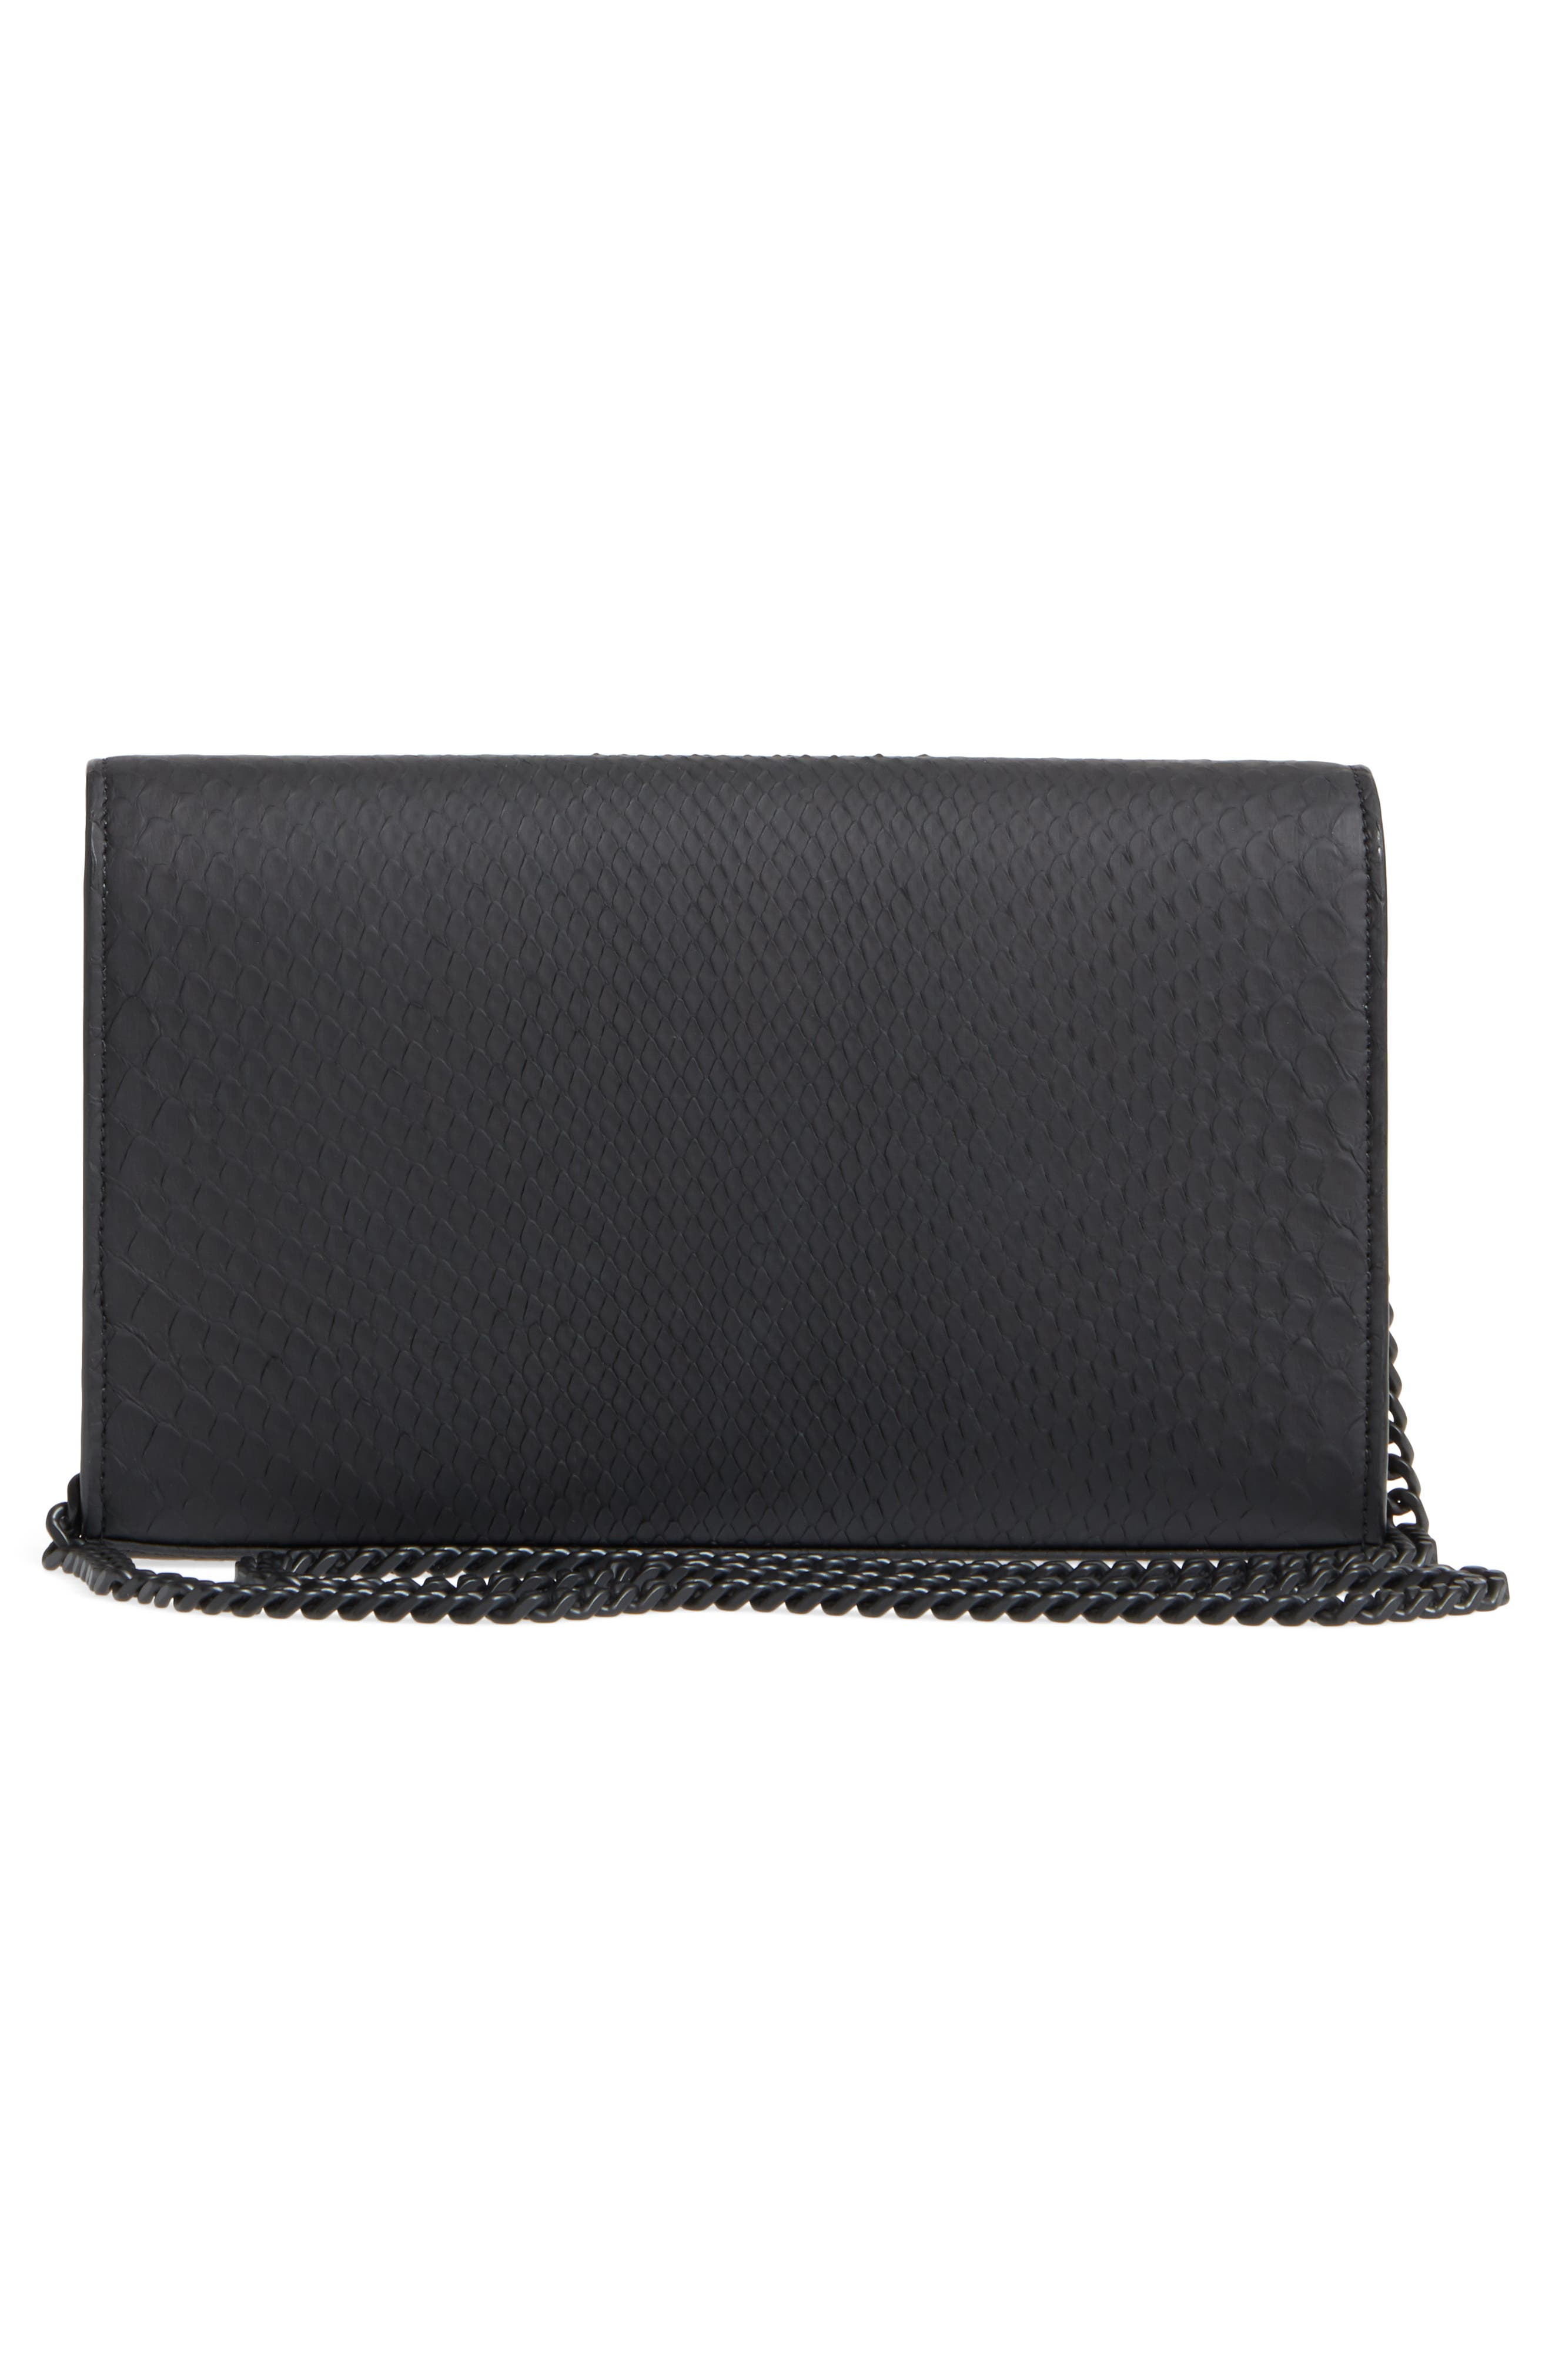 Monogram Genuine Python Wallet on a Chain,                             Alternate thumbnail 3, color,                             NOIR